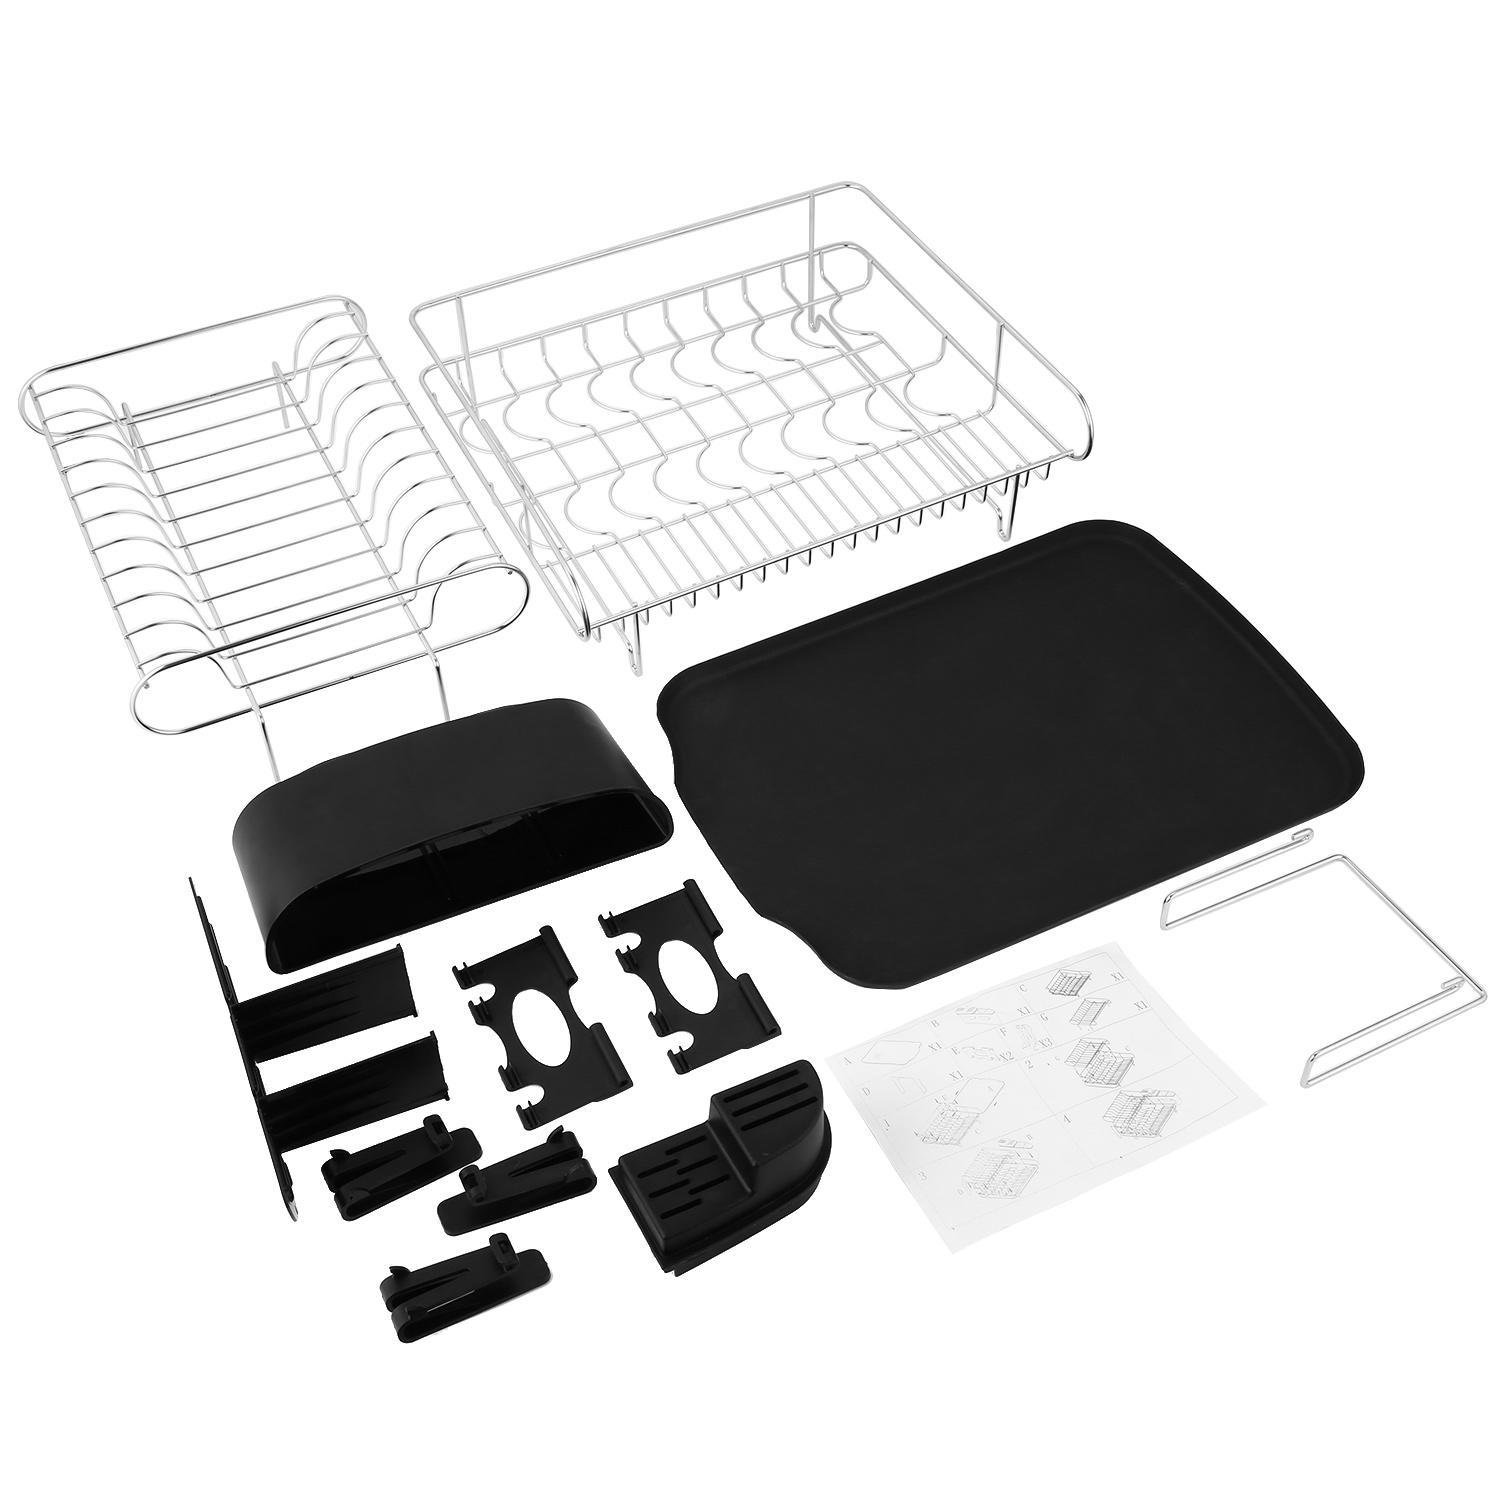 Mewalker 2 Tier Dish Drying Rack 304 Stainless Steel Professional Dish Rack with Microfiber Mat Drain Board and Cutlery Holder, Black by Mewalker (Image #9)